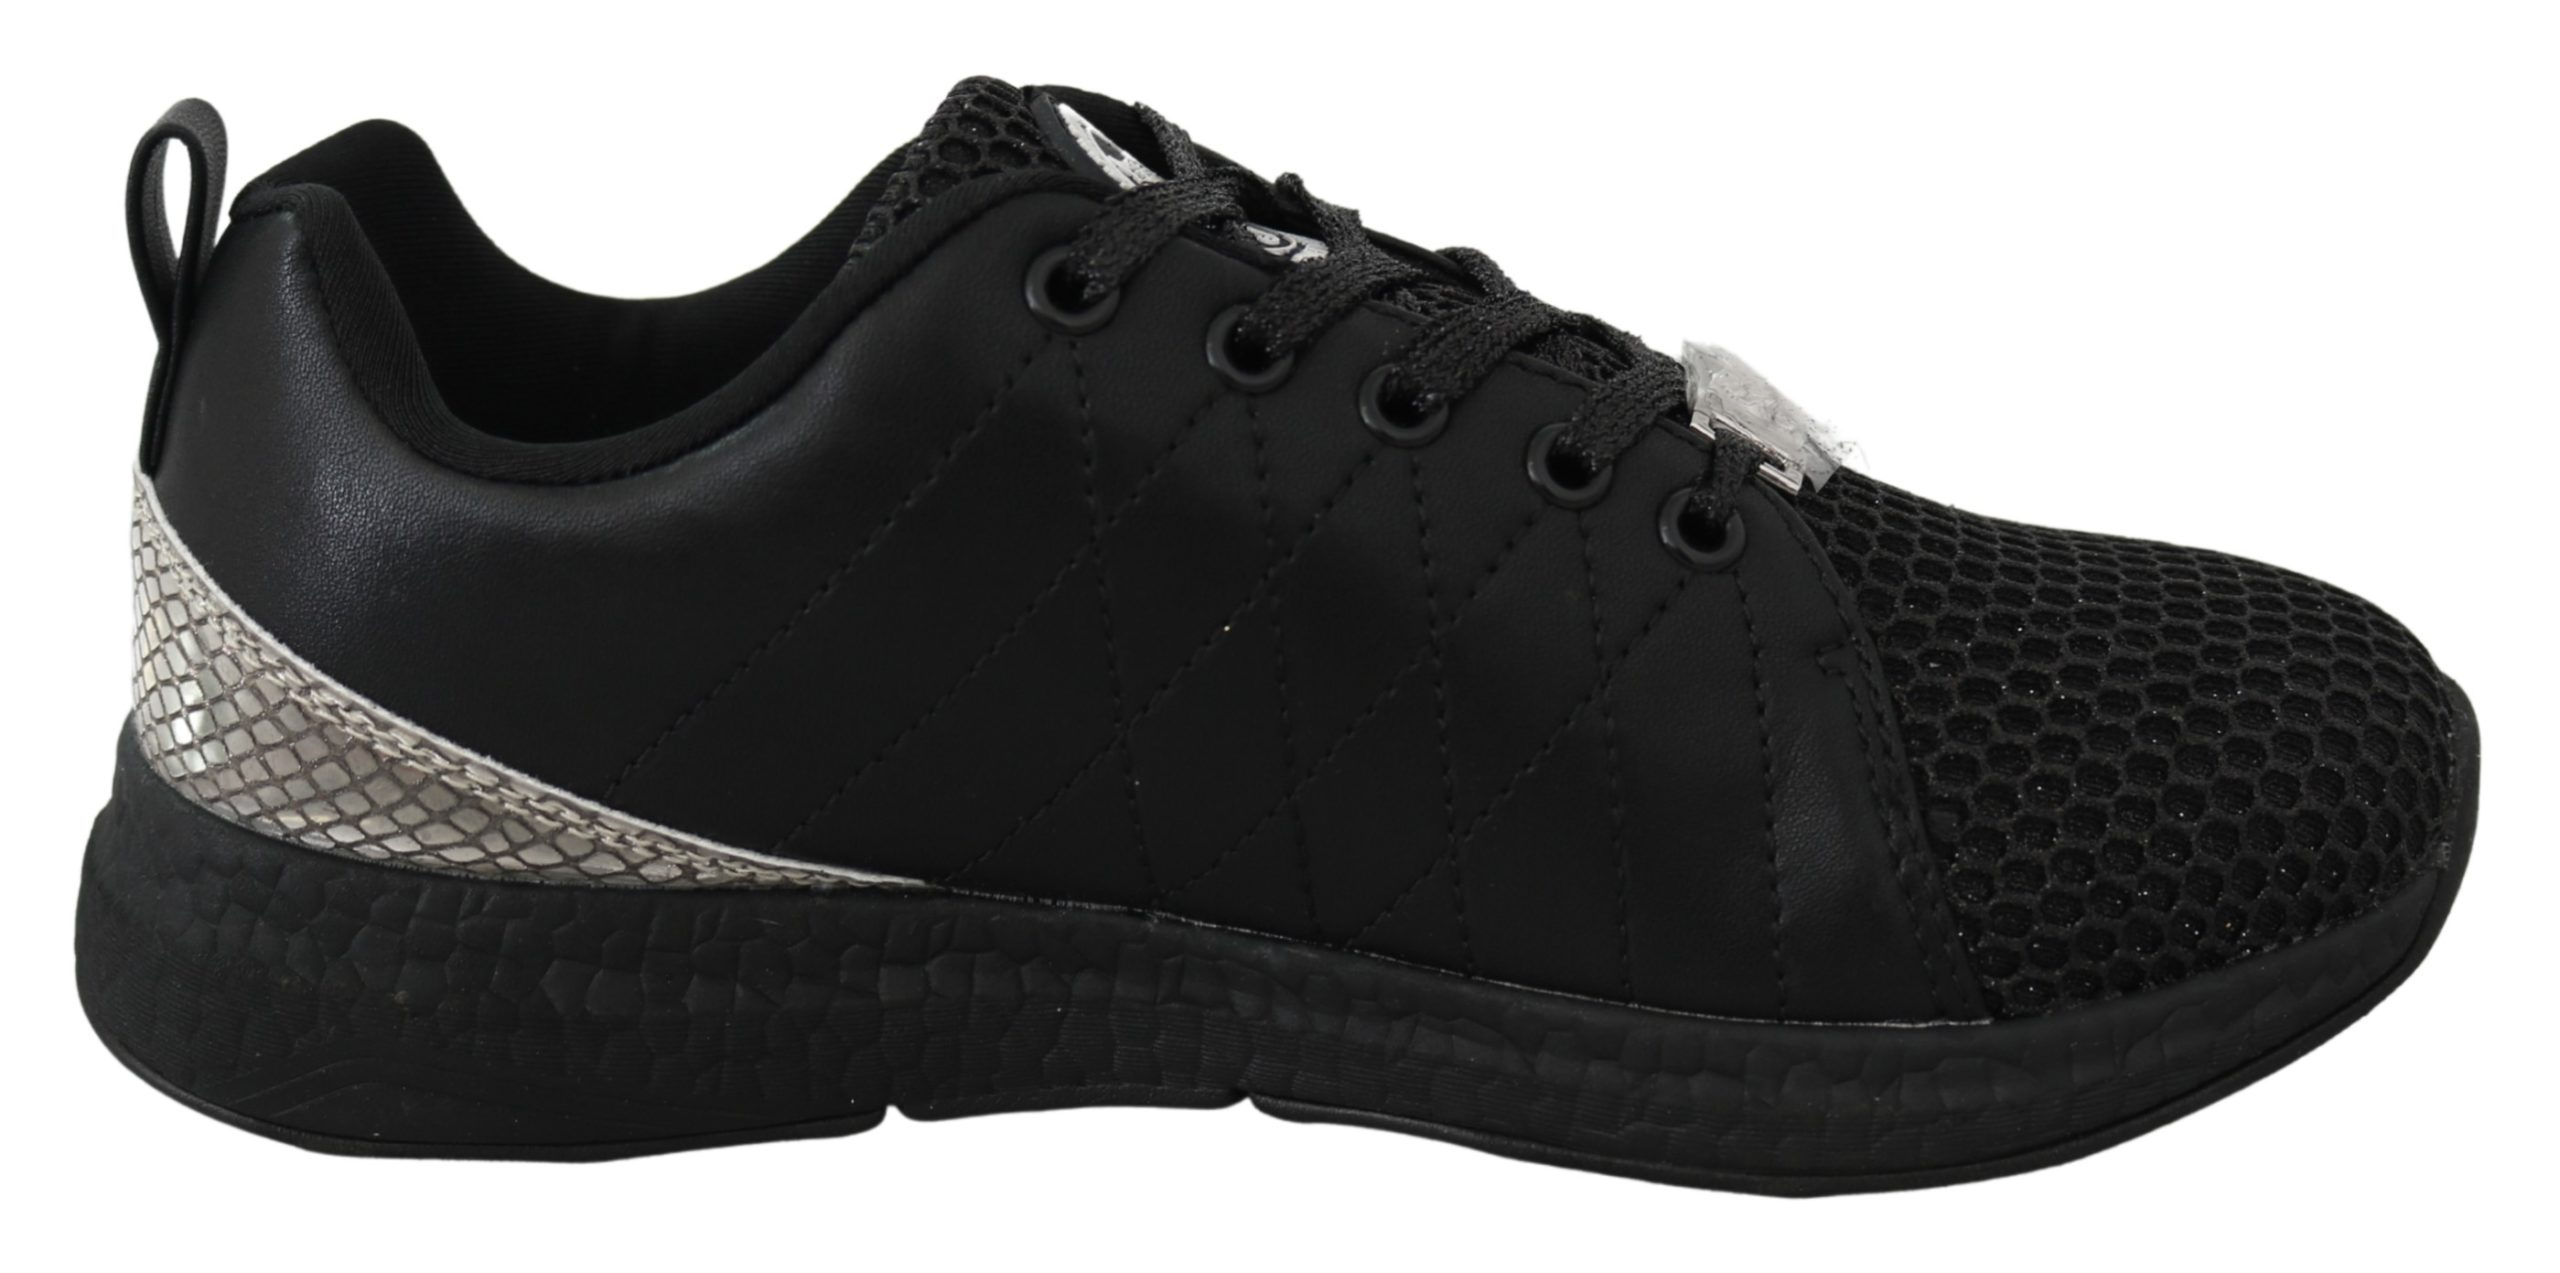 Black Polyester Runner Gisella Sneakers Shoes - EU36/US6